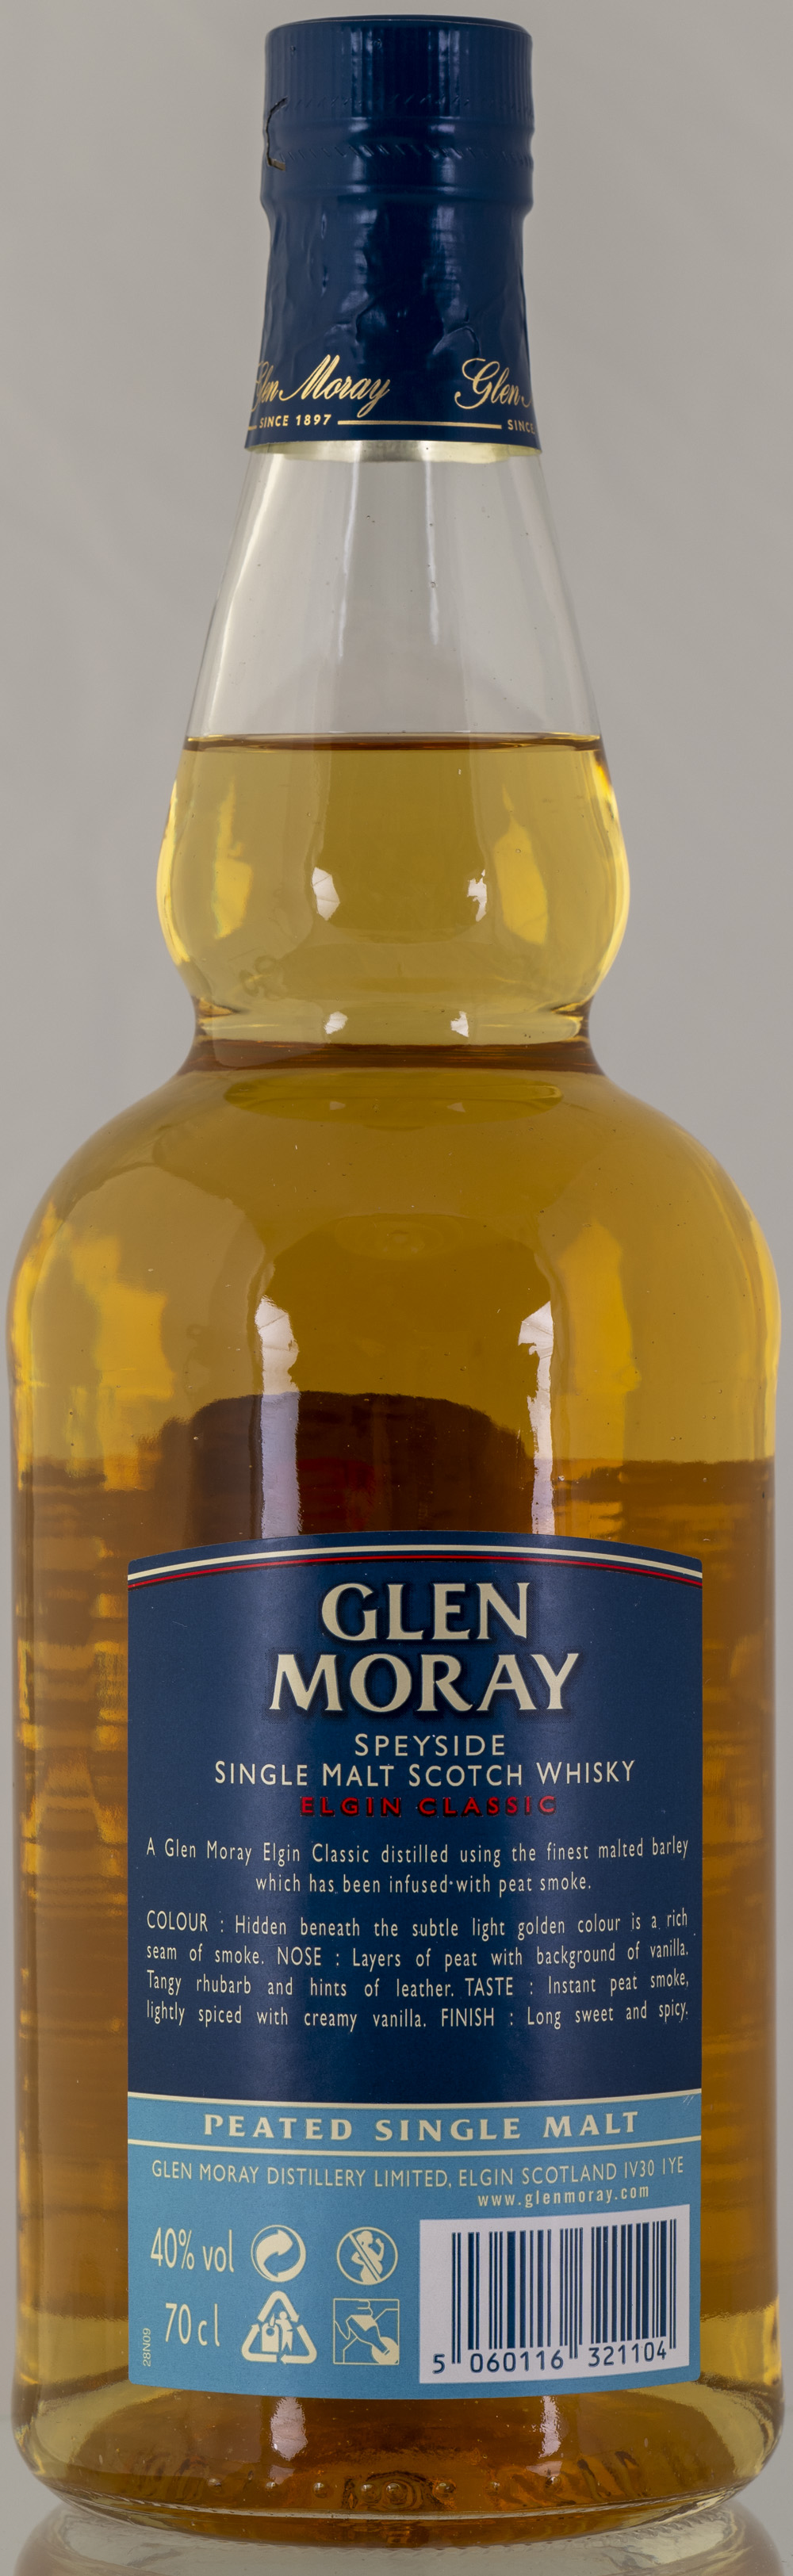 Billede: PHC_2273 - Glen Moray - Elgin Classic Peated - bottle back.jpg